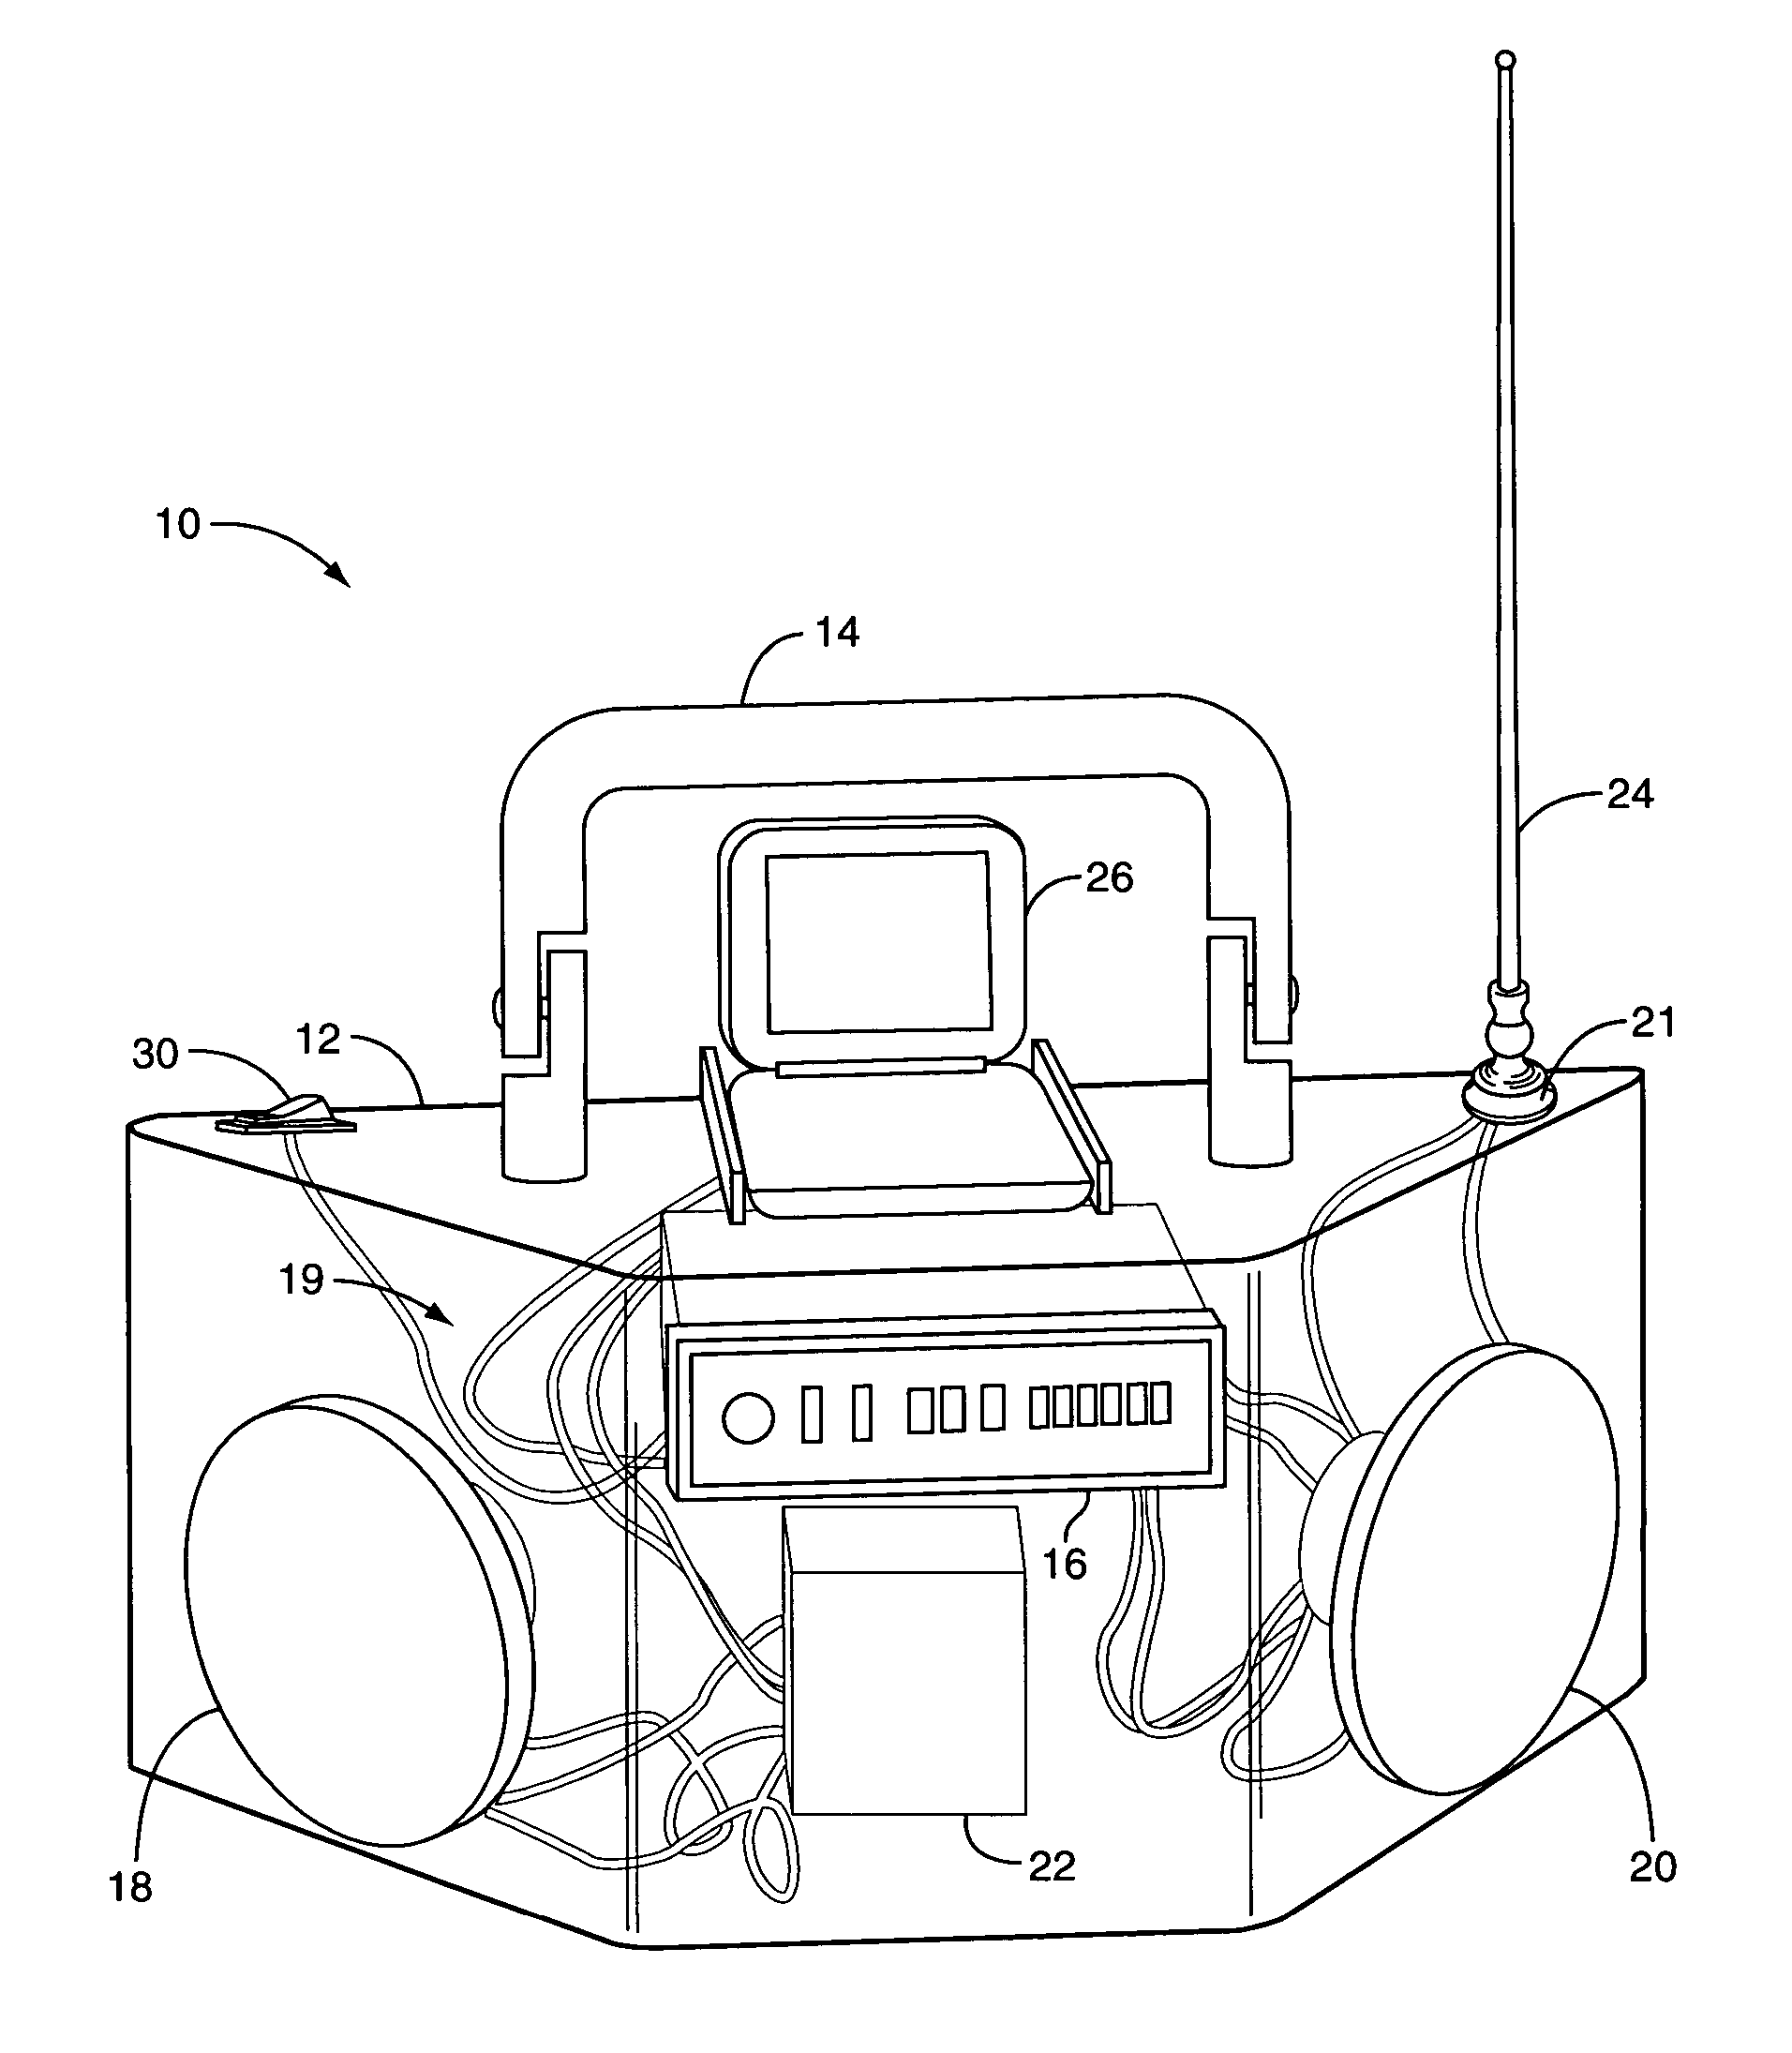 patent us8027499 portable audio system with changeable 8 Track vs Cassette Tape patent drawing